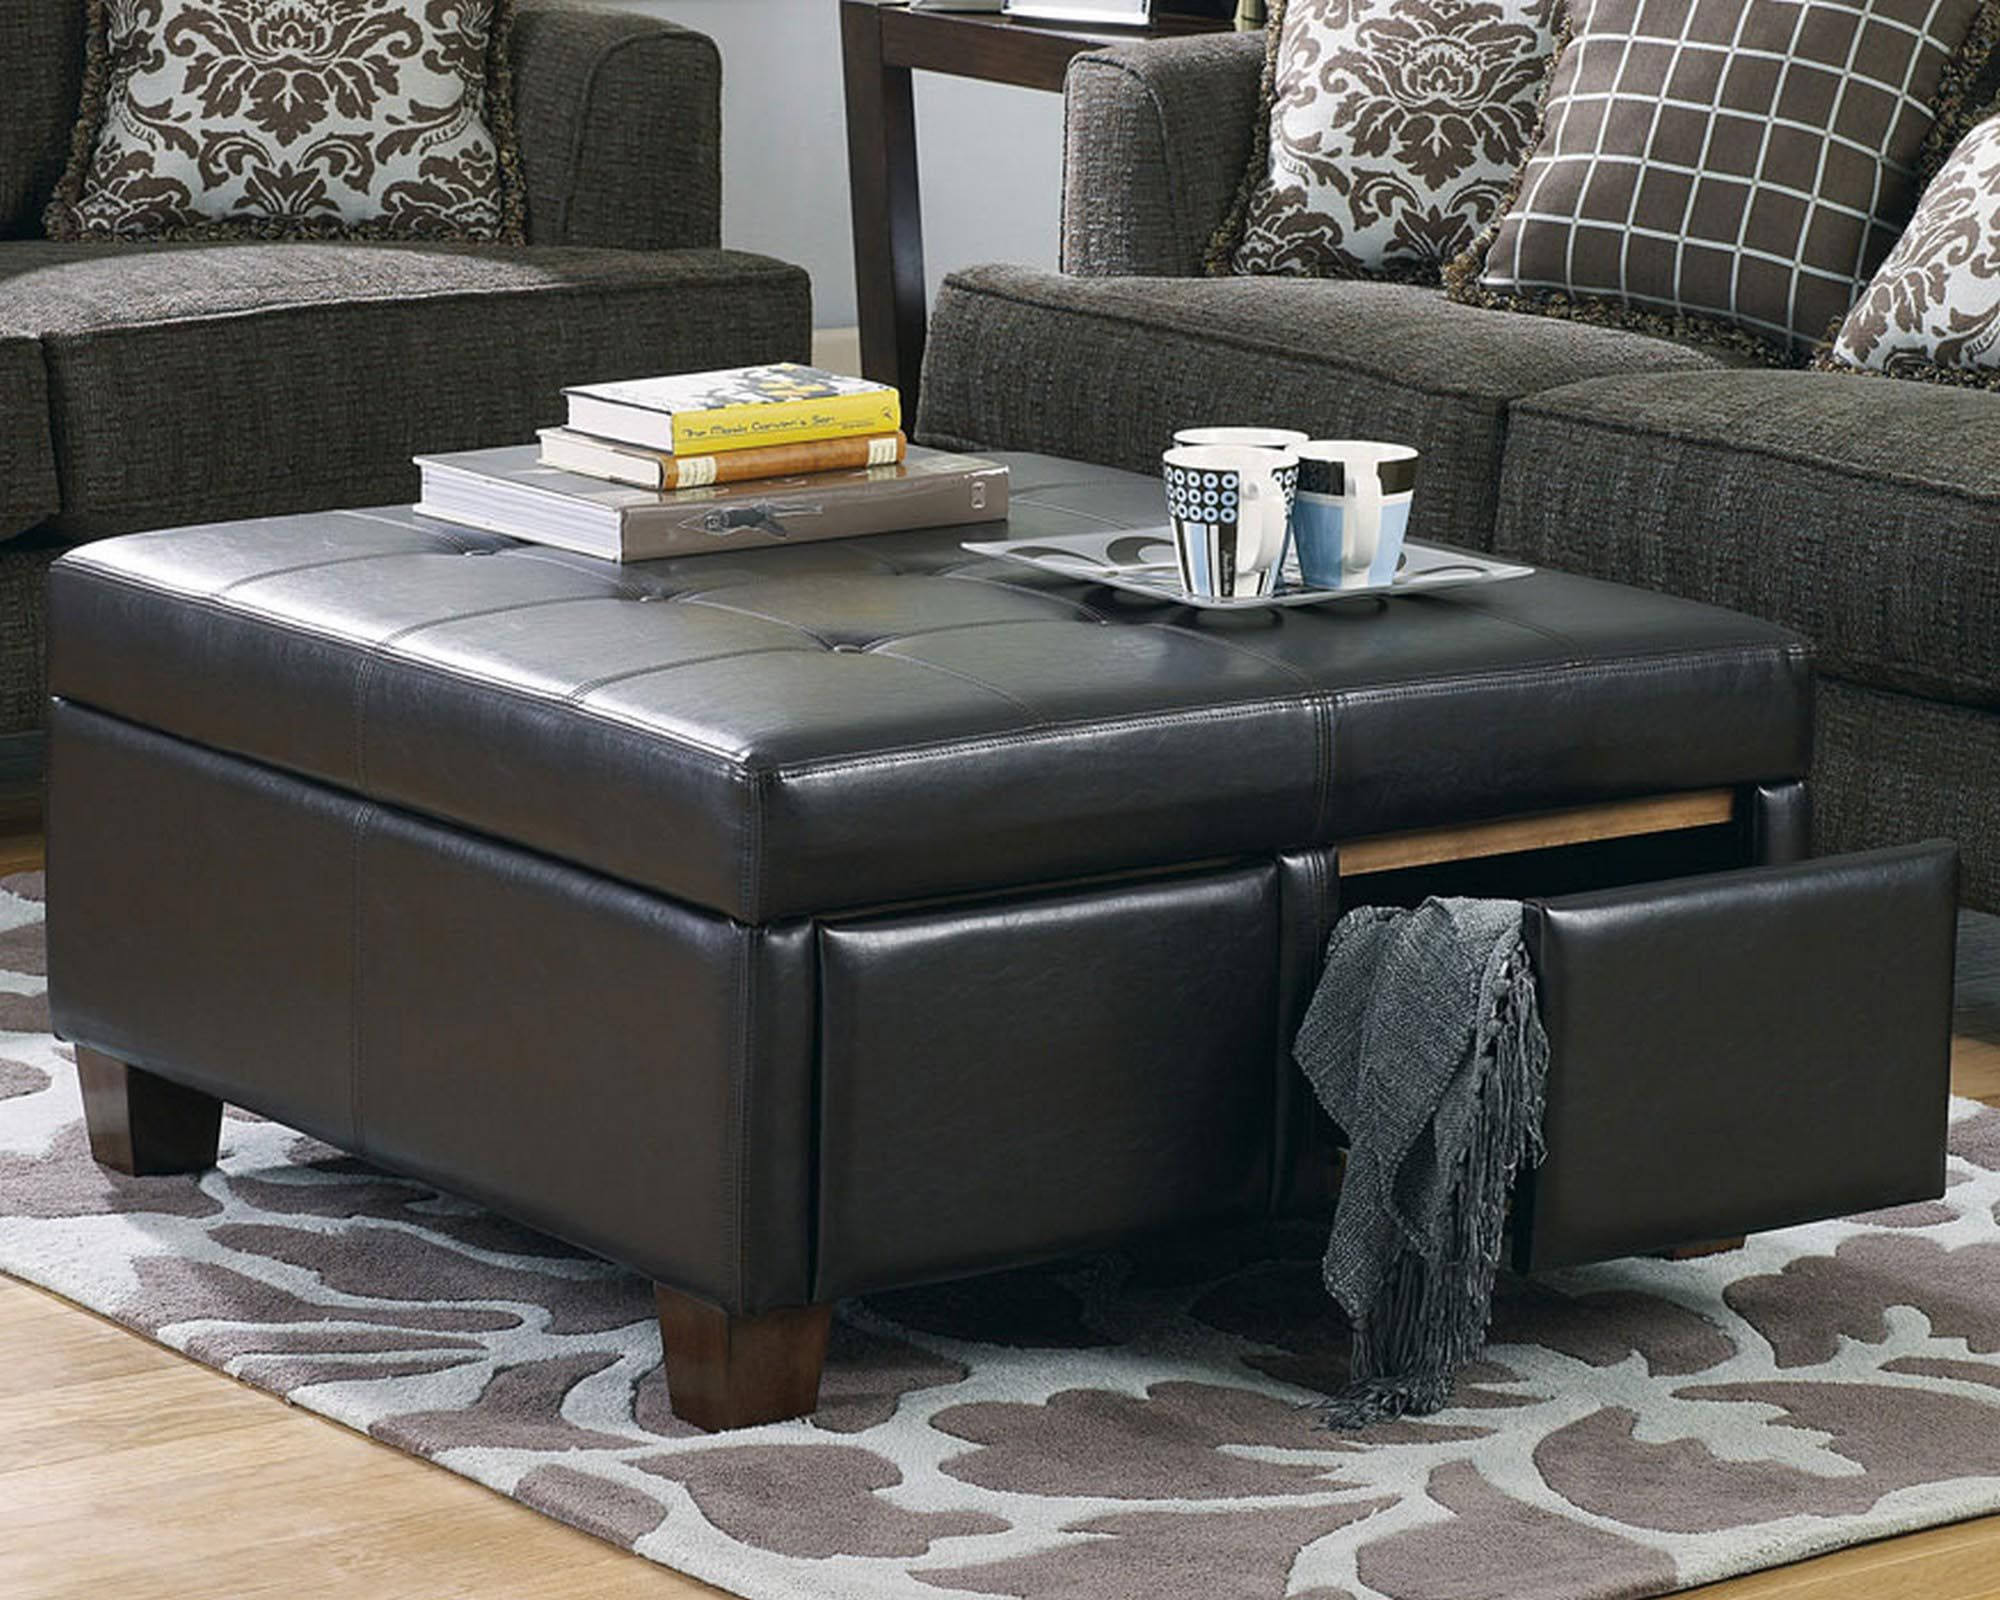 Black Leather Ottoman Coffee Table Coffee Tables Leather Ottoman in size 2000 X 1600